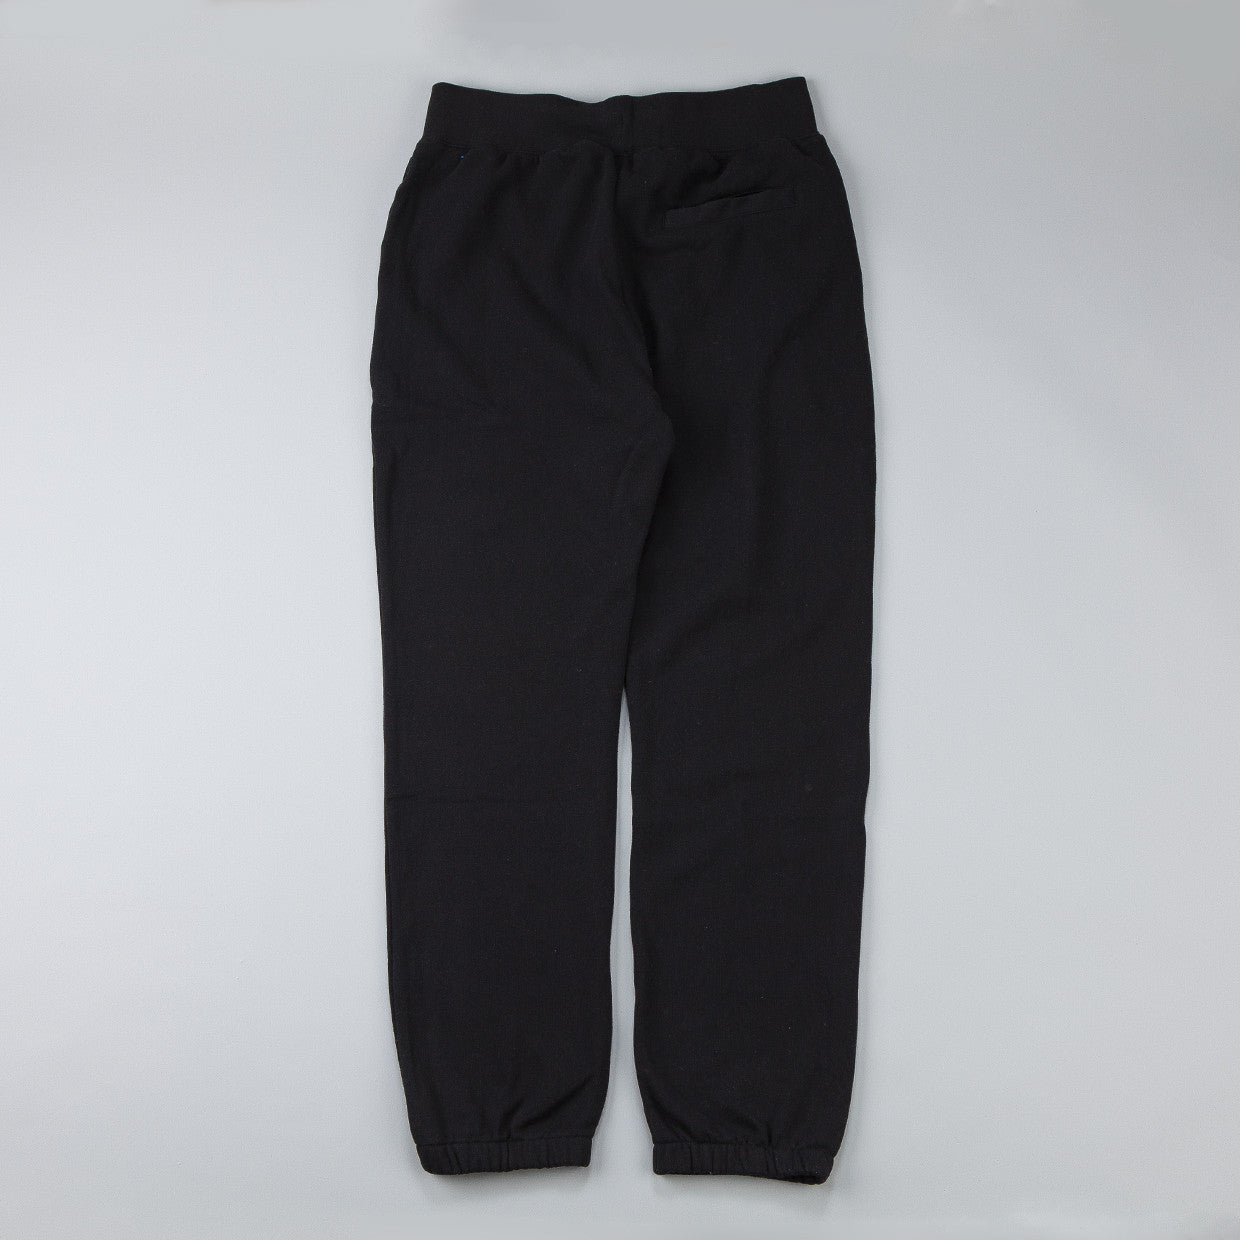 Undefeated 5 Strike Basic Sweatpants Black